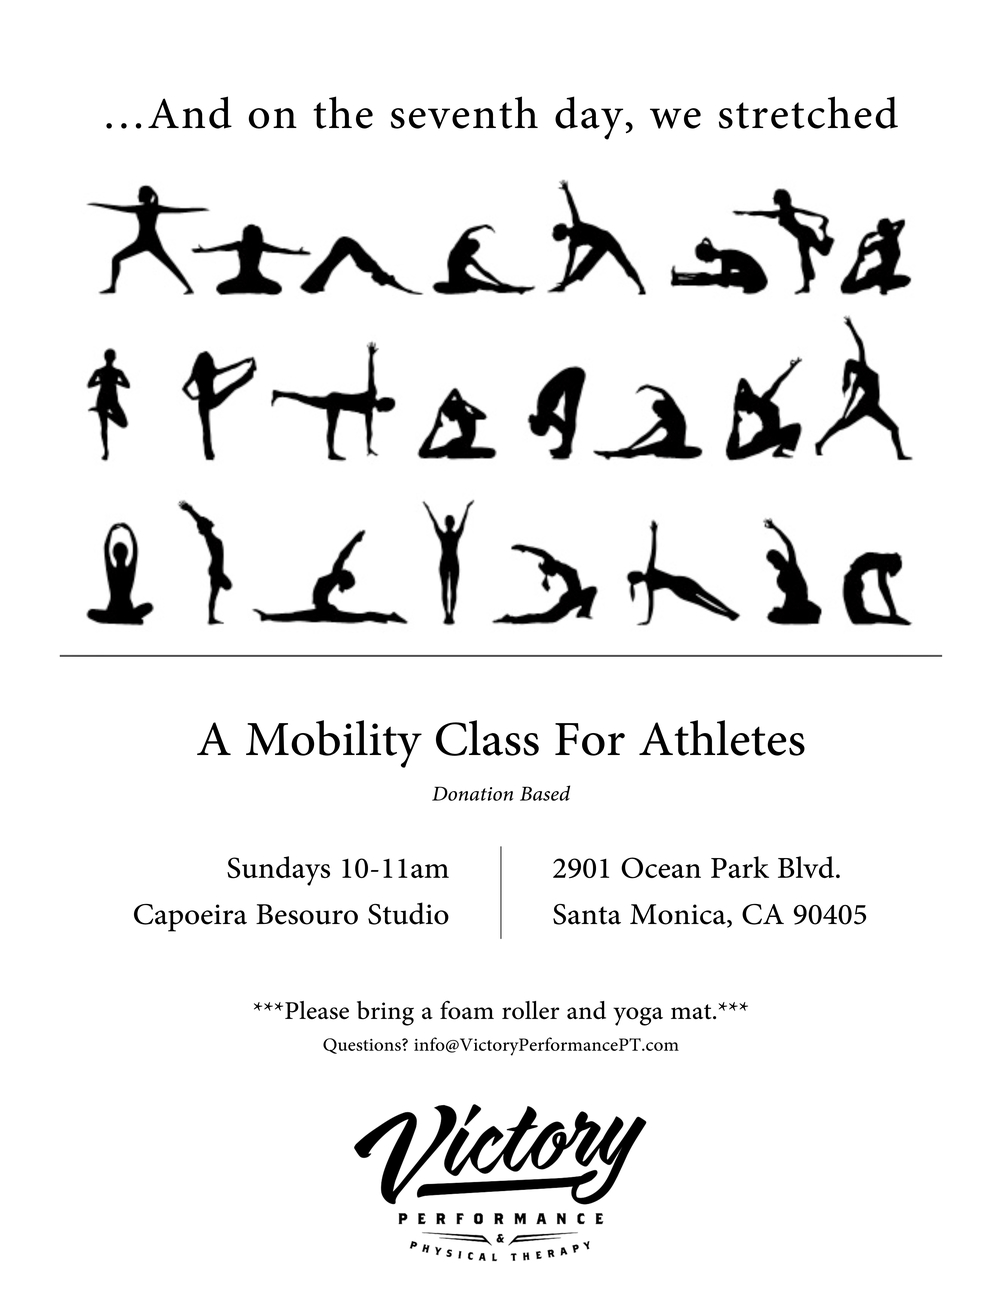 Mobility for Athletes